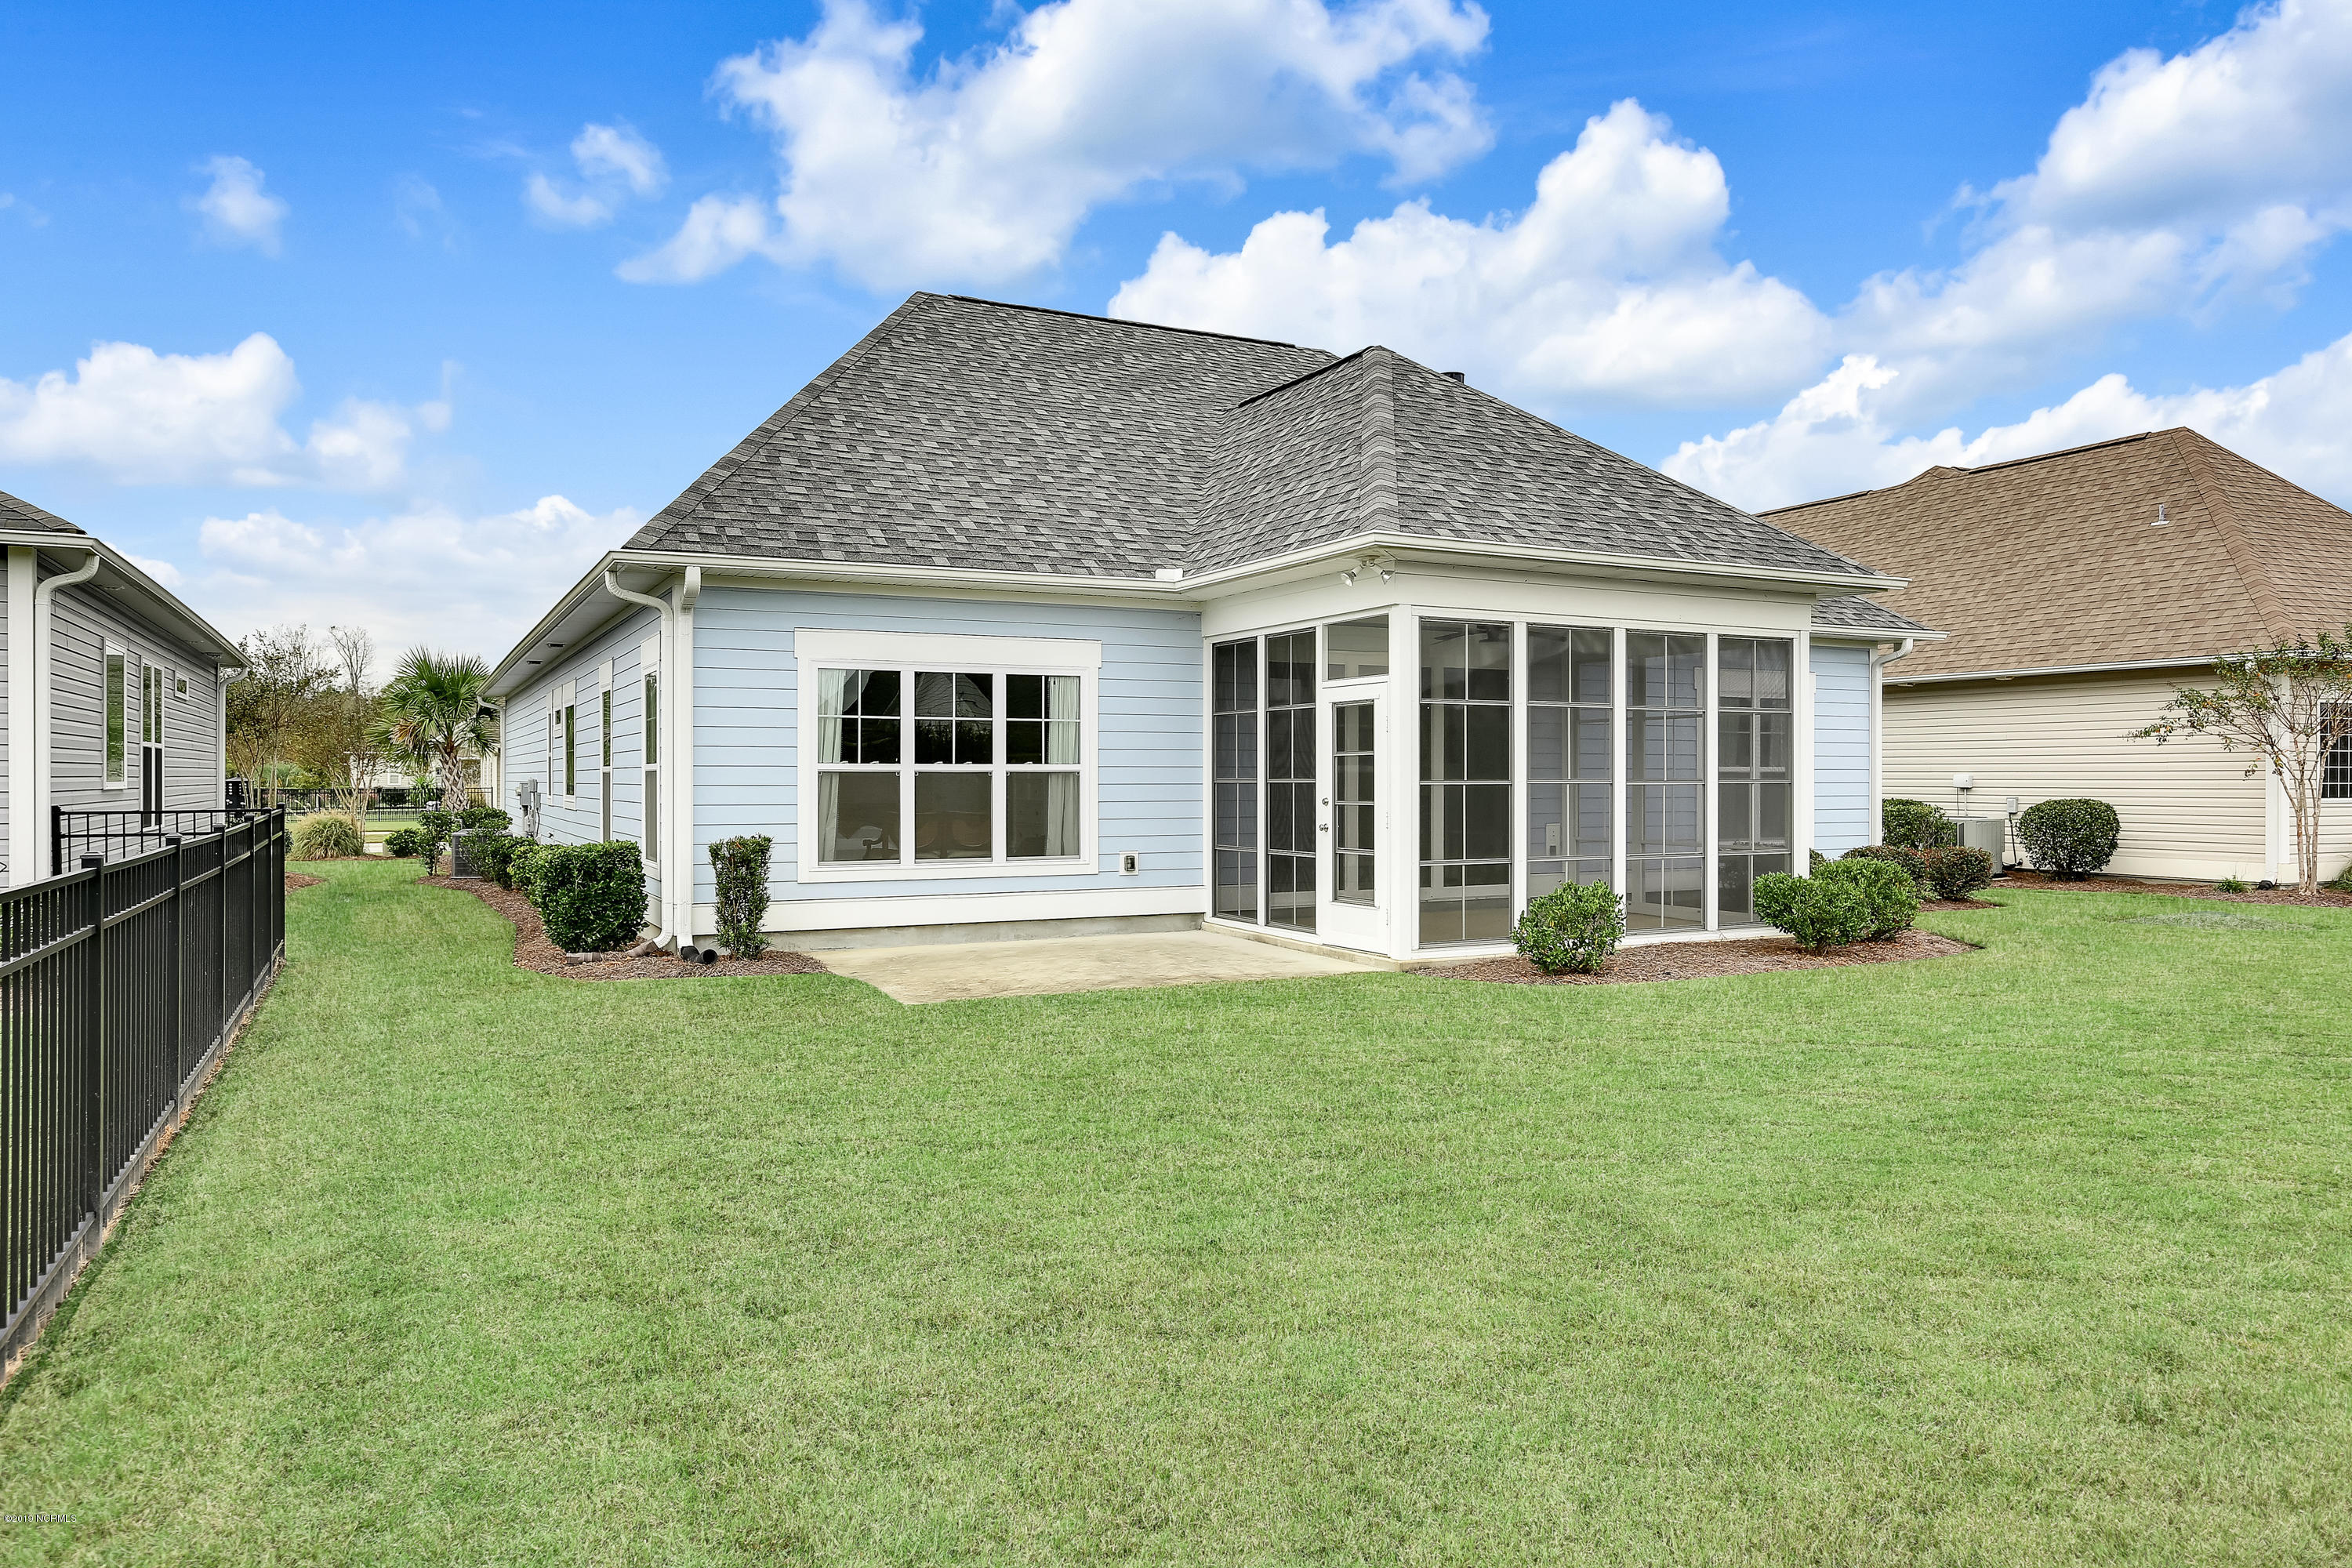 2283 Curly Maple Wynd Court Leland, NC 28451